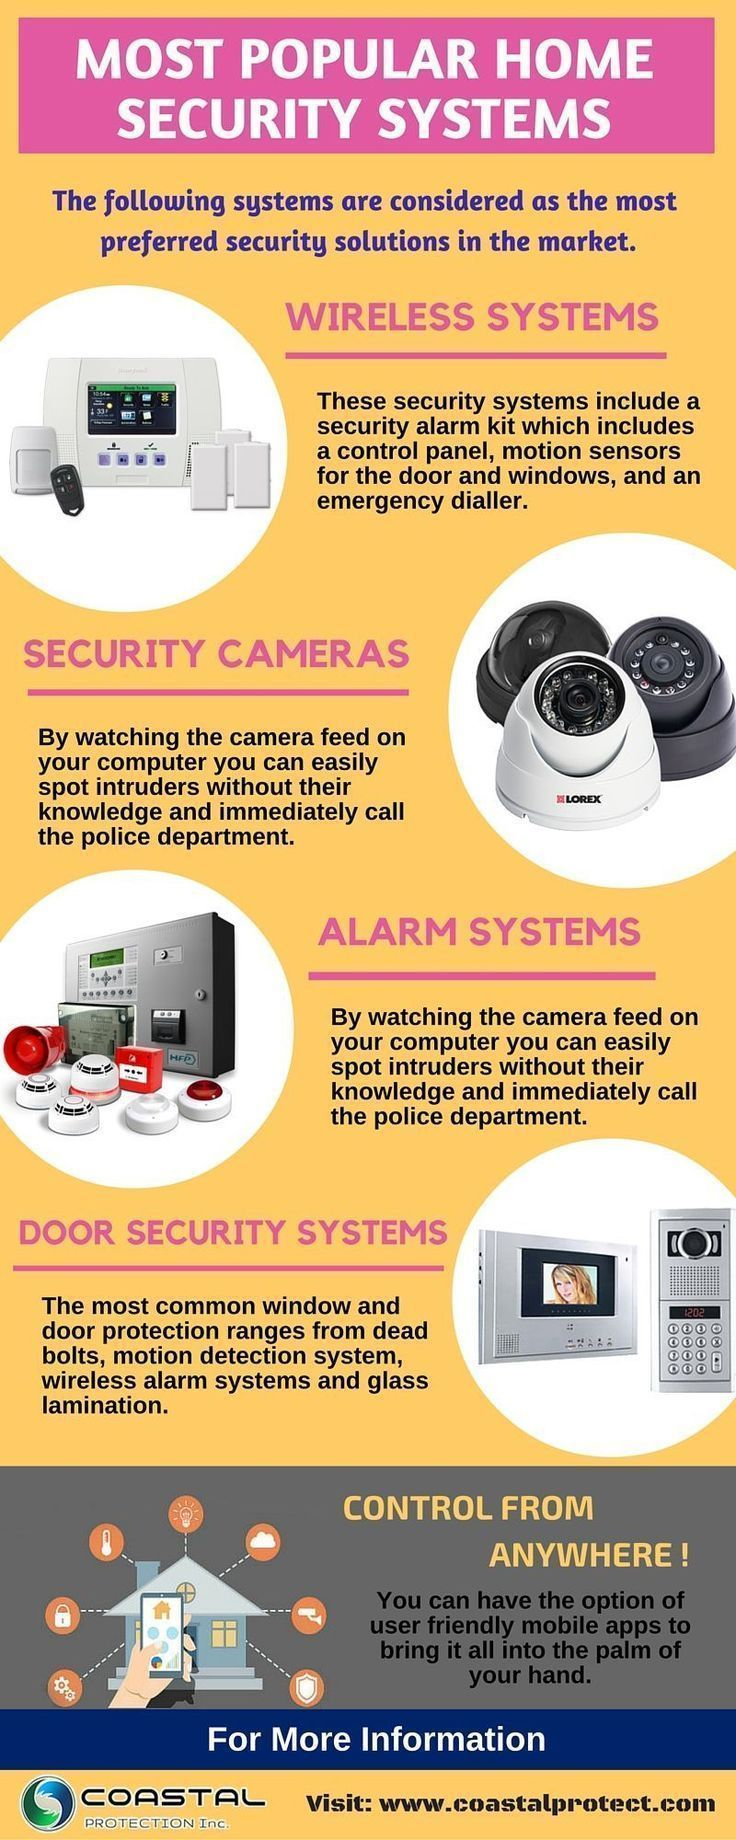 80 best diy home security images on pinterest diy home security 80 best diy home security images on pinterest diy home security safety and good ideas solutioingenieria Choice Image